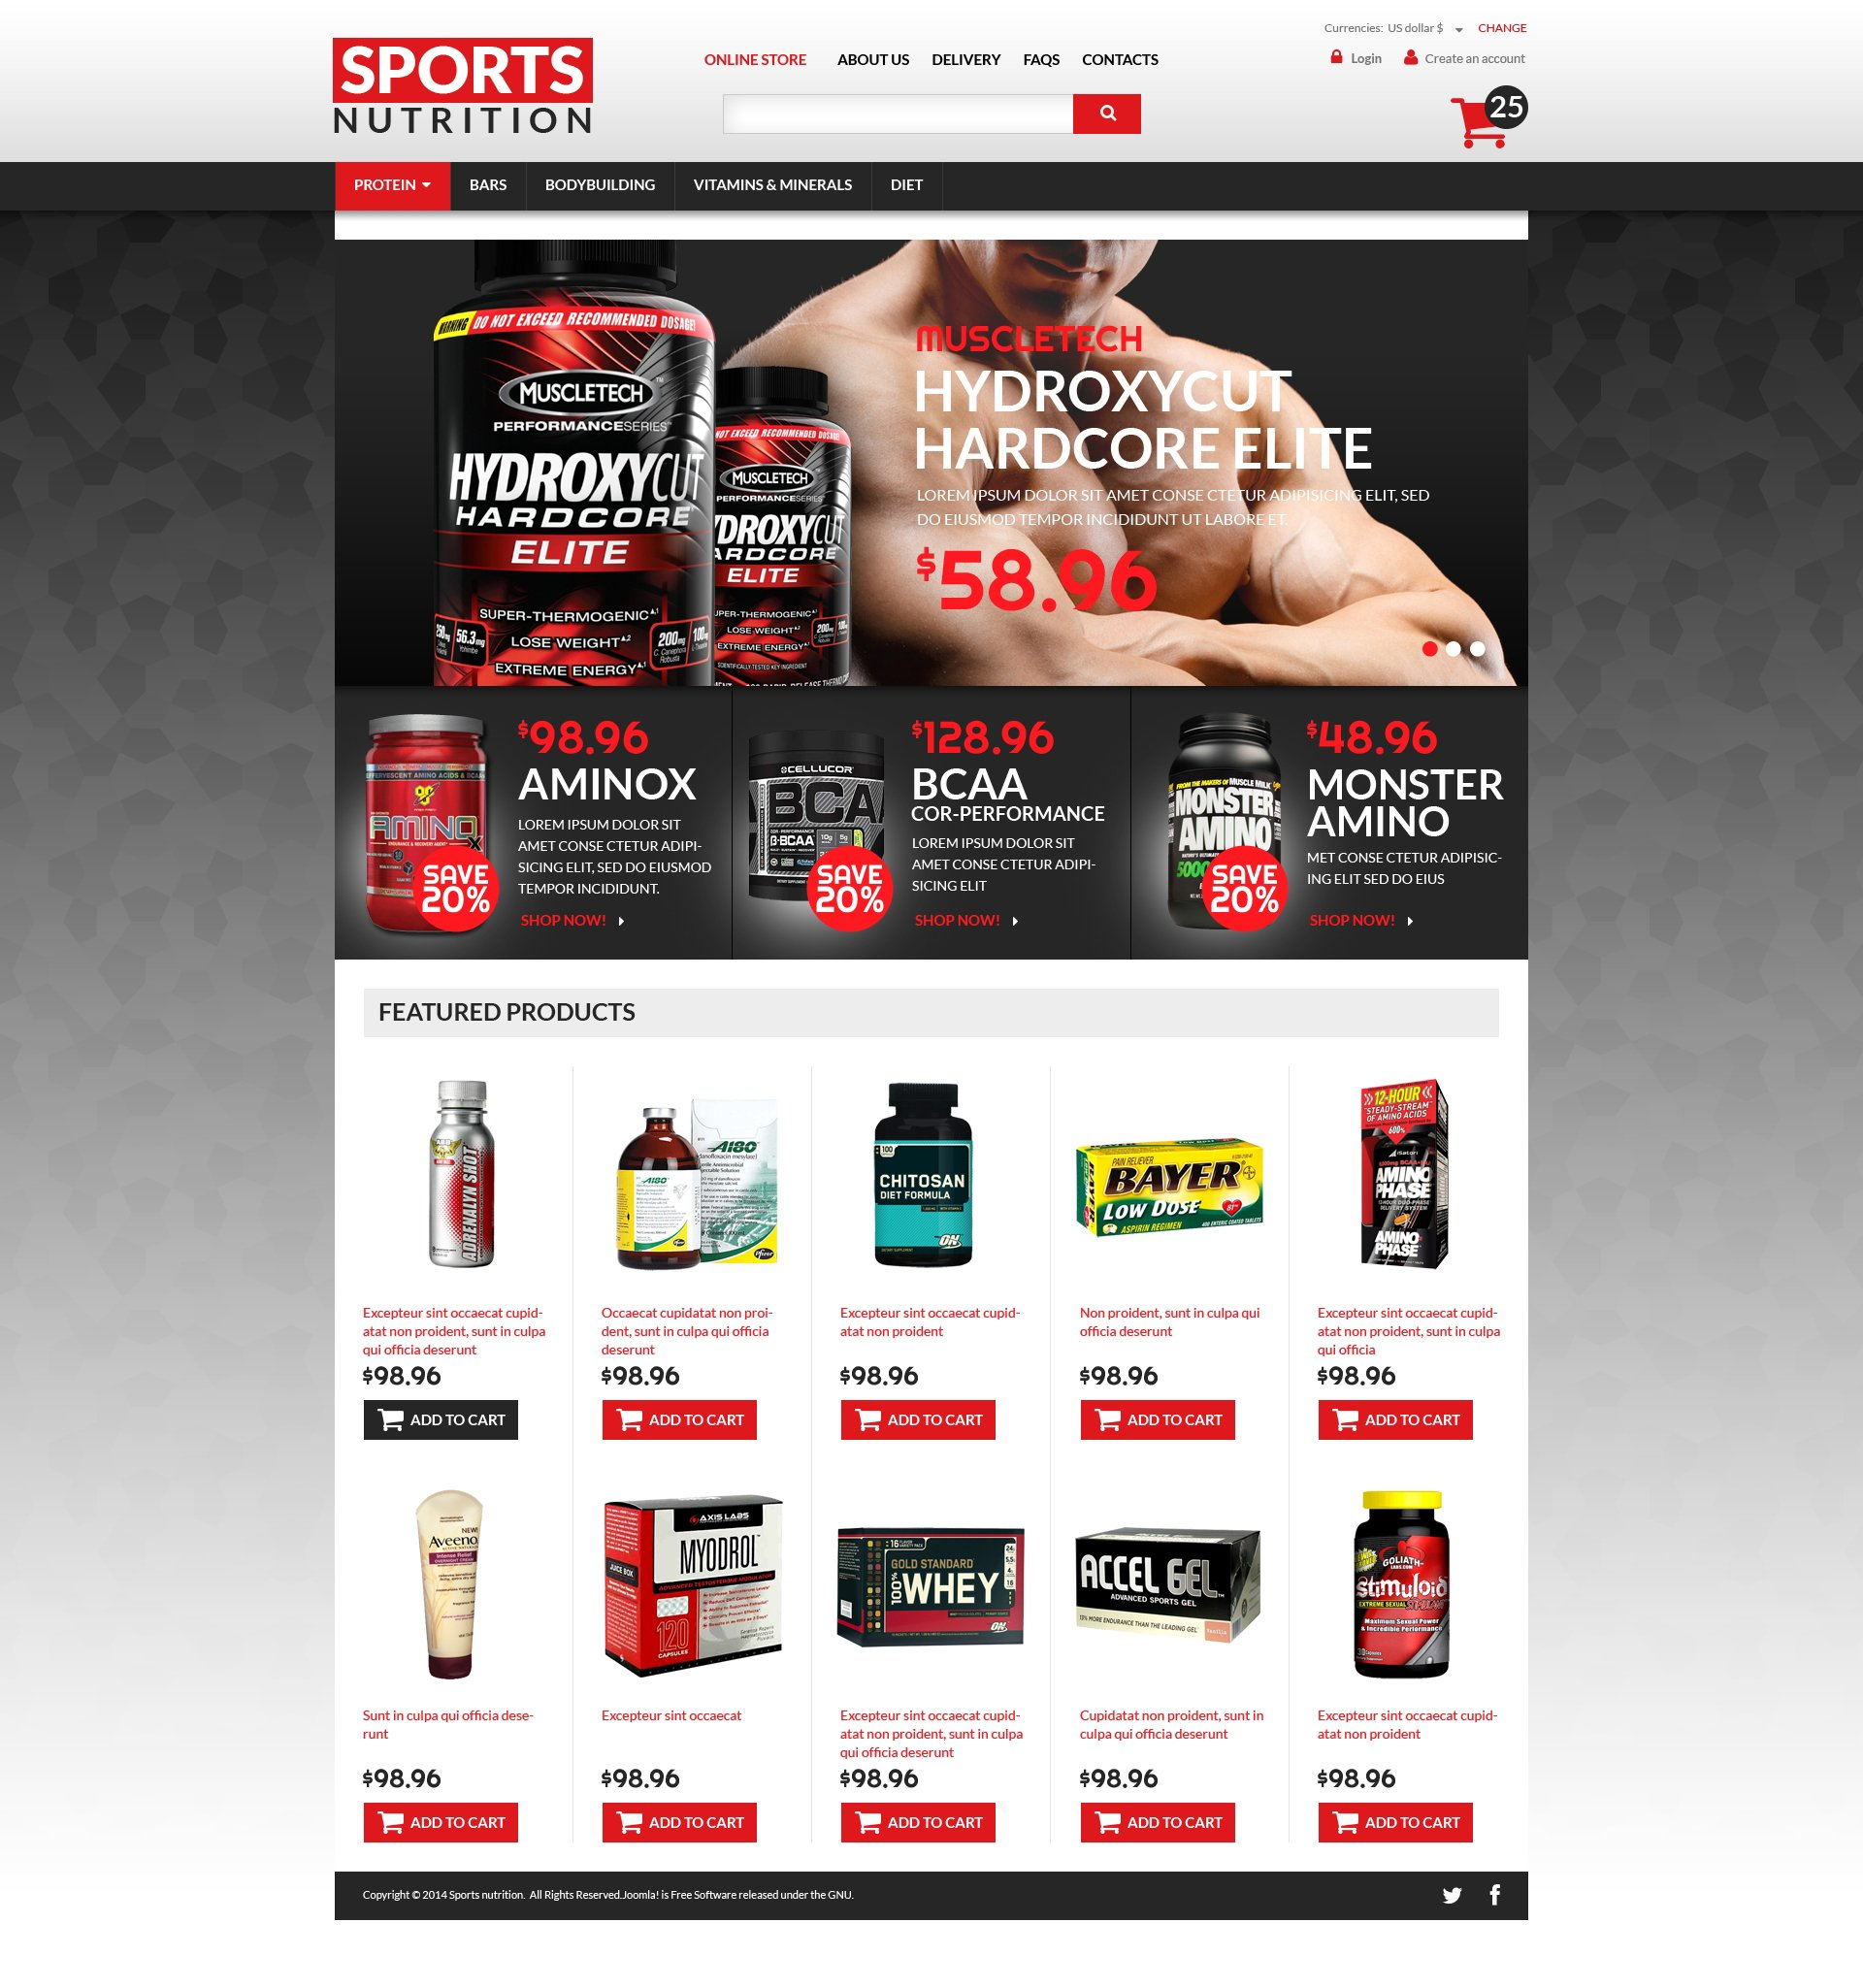 sports nutrition supplements virtuemart template 49454. Black Bedroom Furniture Sets. Home Design Ideas